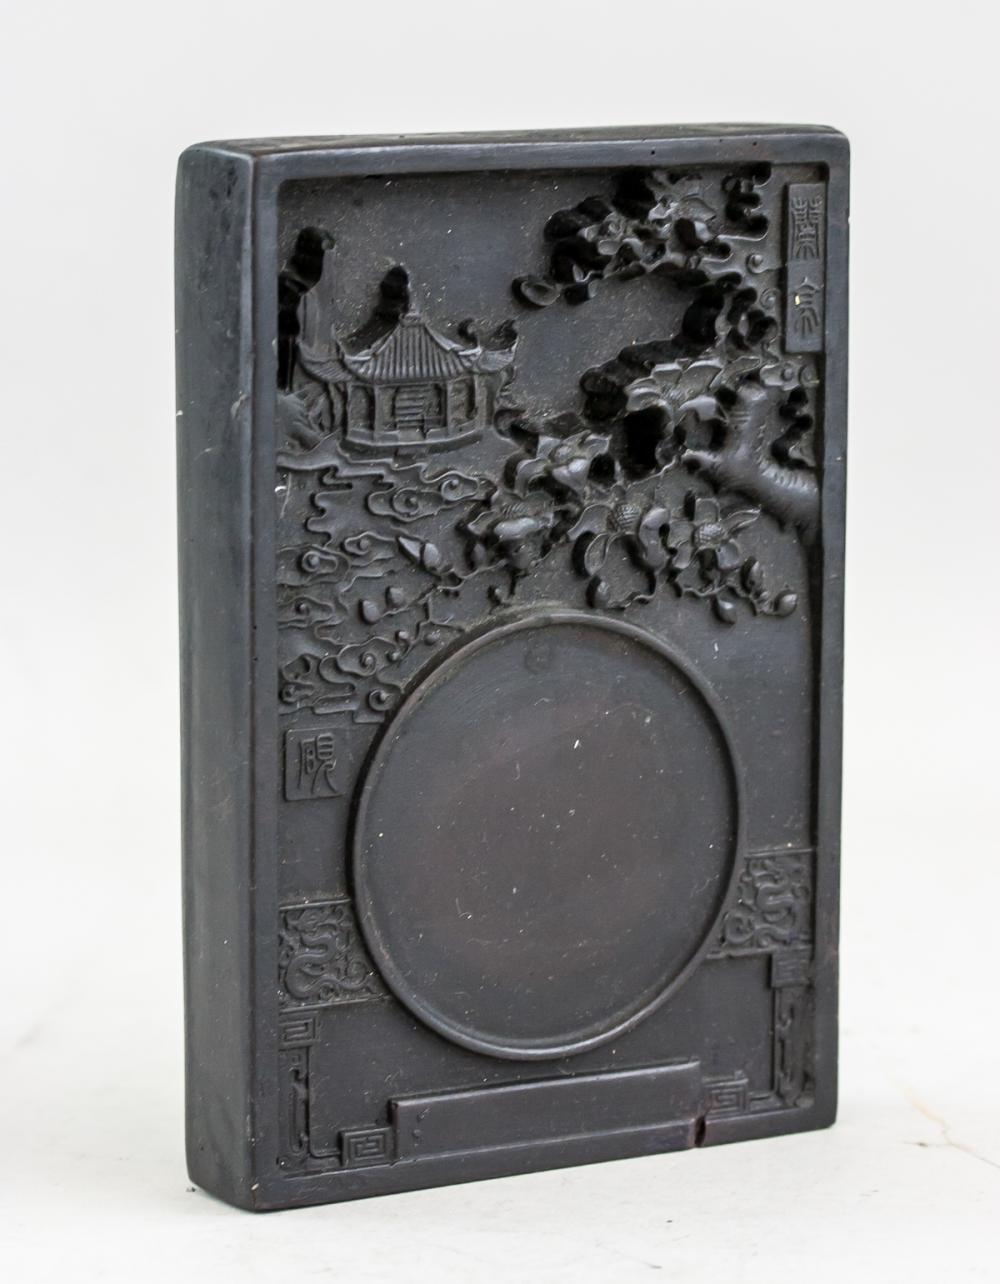 Lot 306: Chinese Ink Stone Inscribed with Lan Ting